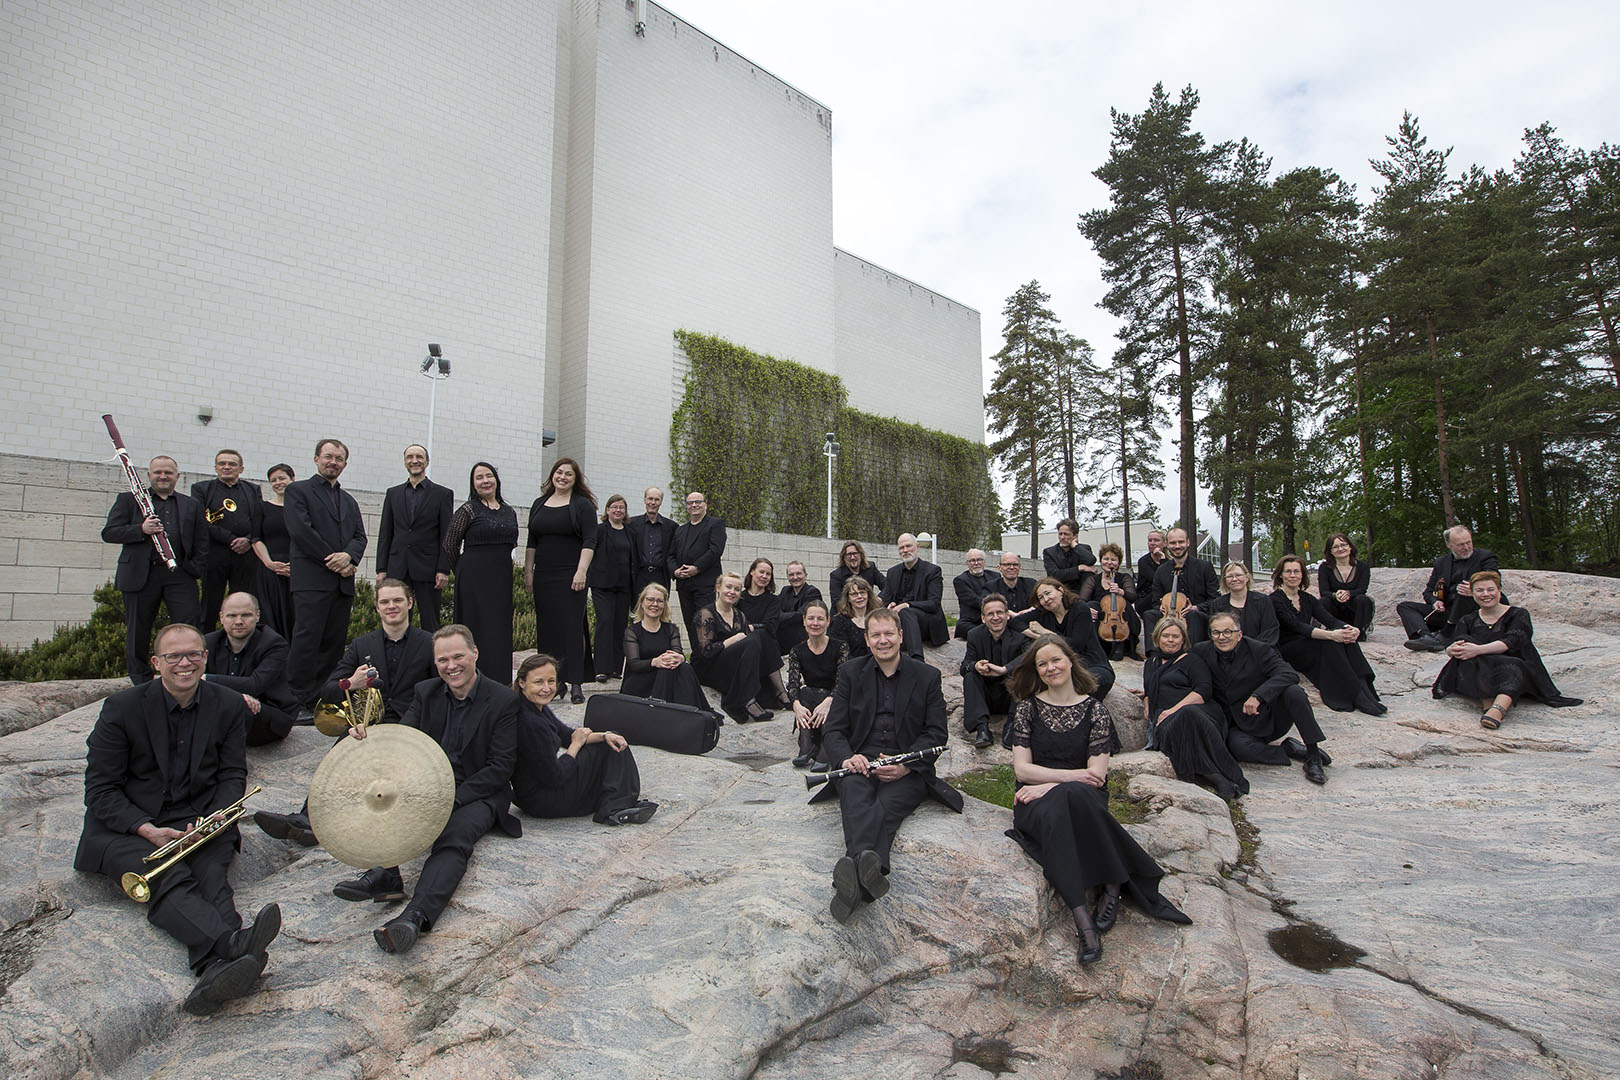 Tapiola Sinfonietta consists of 43 musicians. Photo: Olli Häkämies.